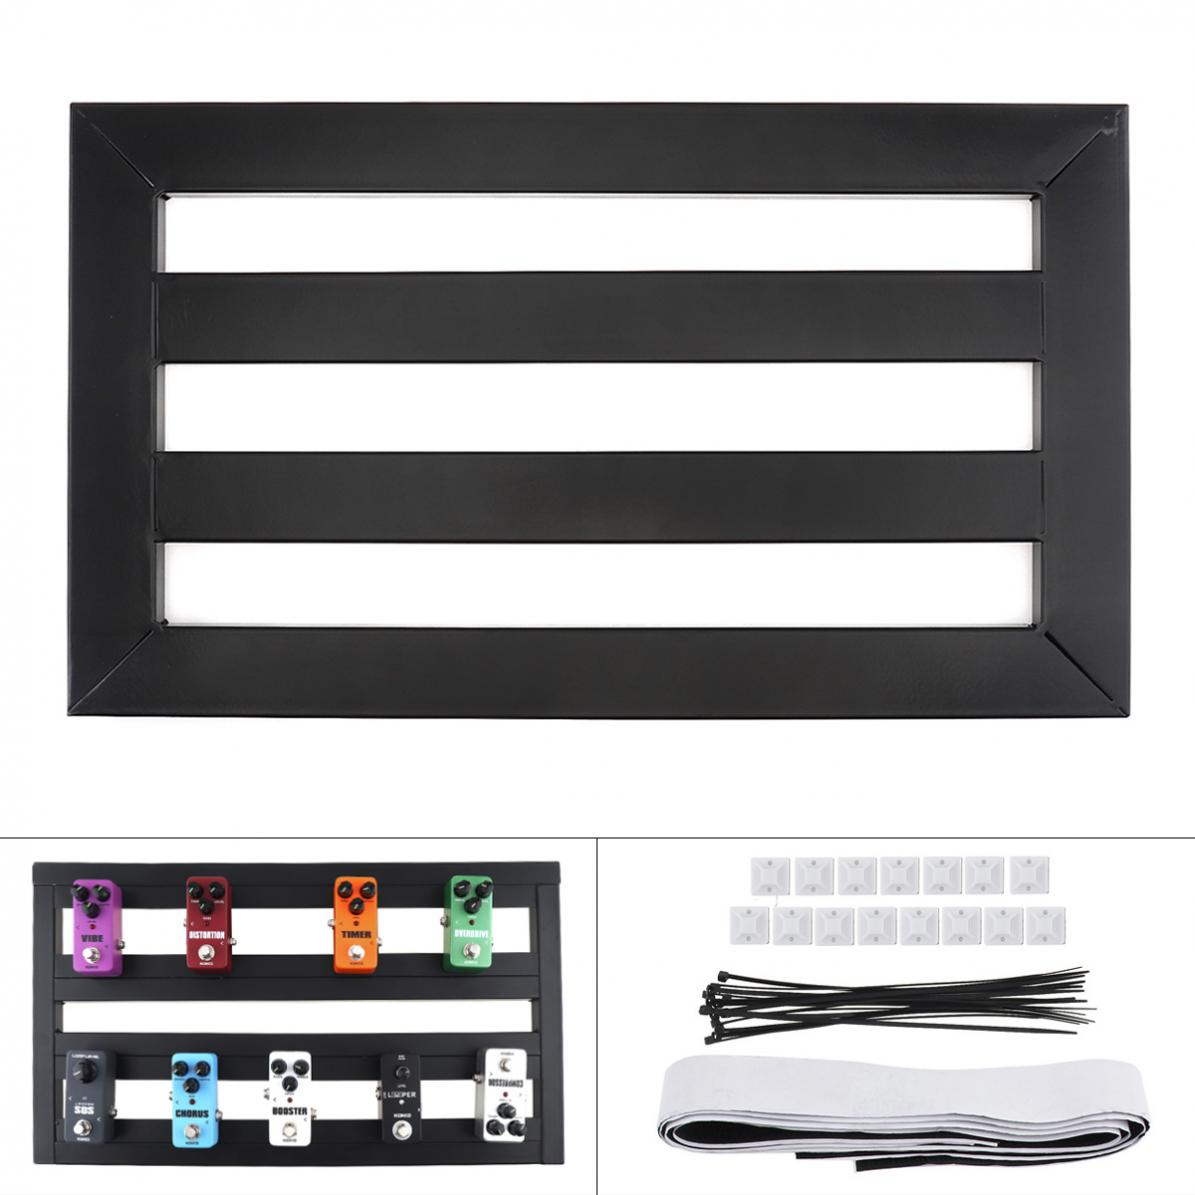 47 x27cm Guitar Pedal Board Setup Bigger Style DIY Guitar Effect Pedalboard with Installation Accessories for